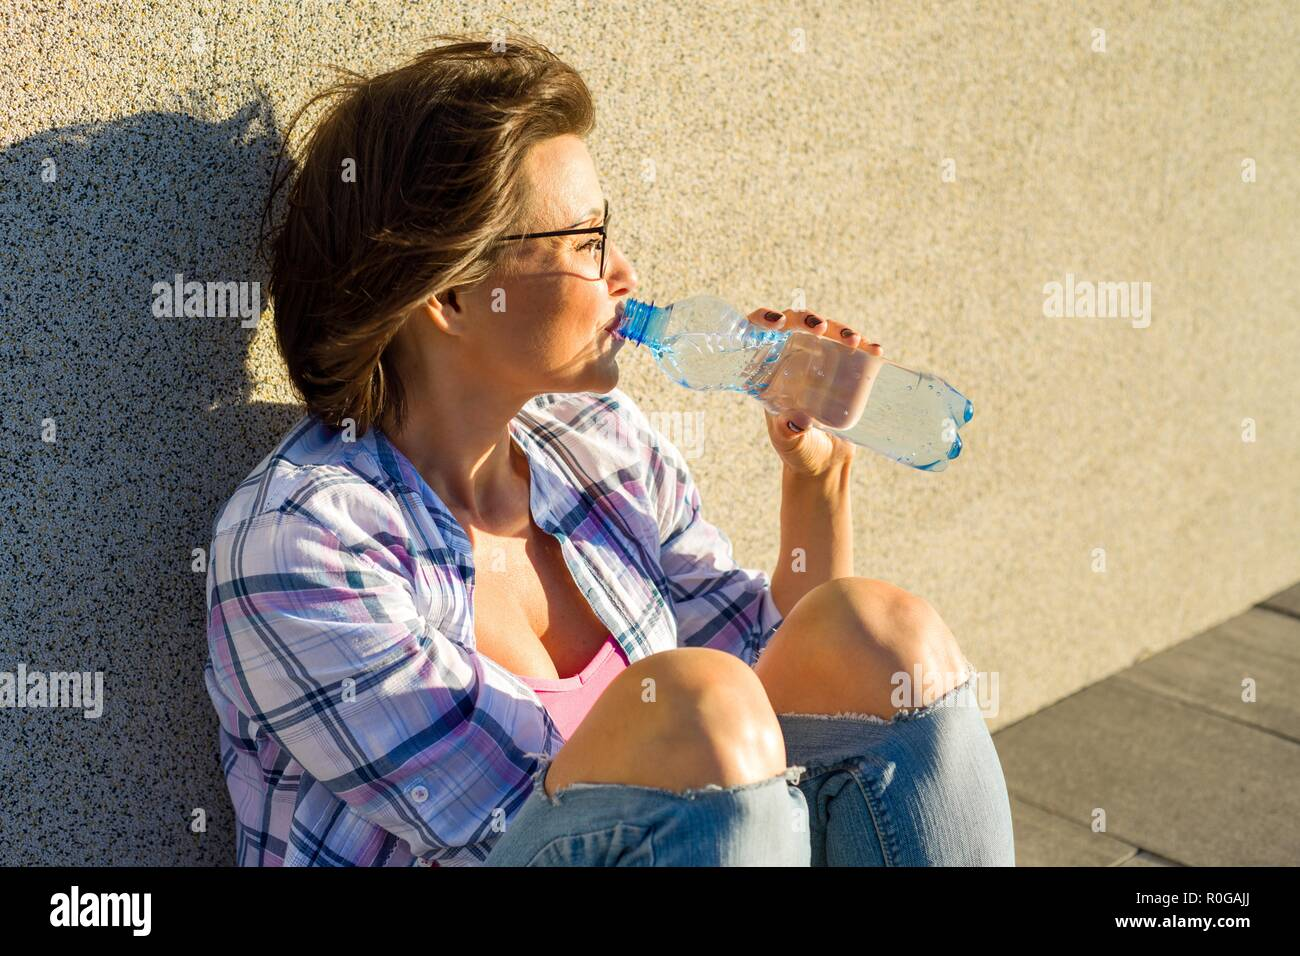 Adult woman with glasses is drinking water from bottle on hot summer day. - Stock Image